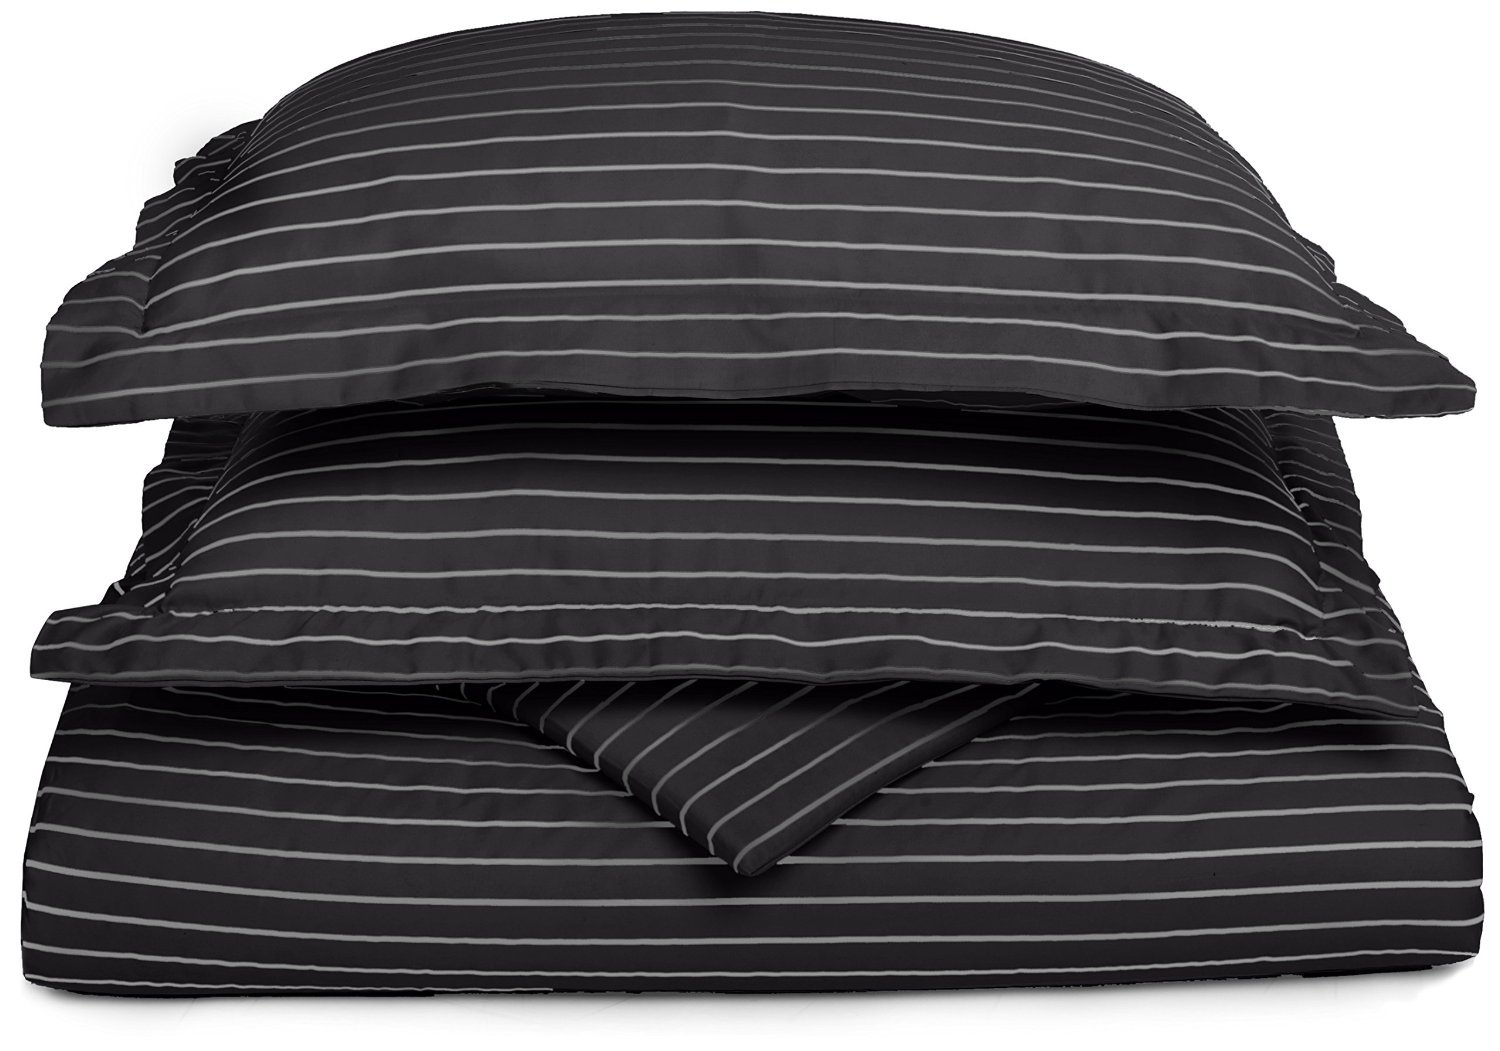 Wrinkle Resistant Bahama Striped 3-Piece King//California King Duvet Cover Set Cotton Blend 600 thread Count Soft Black with White Stripes Superior CR600KCDC BAST-BK